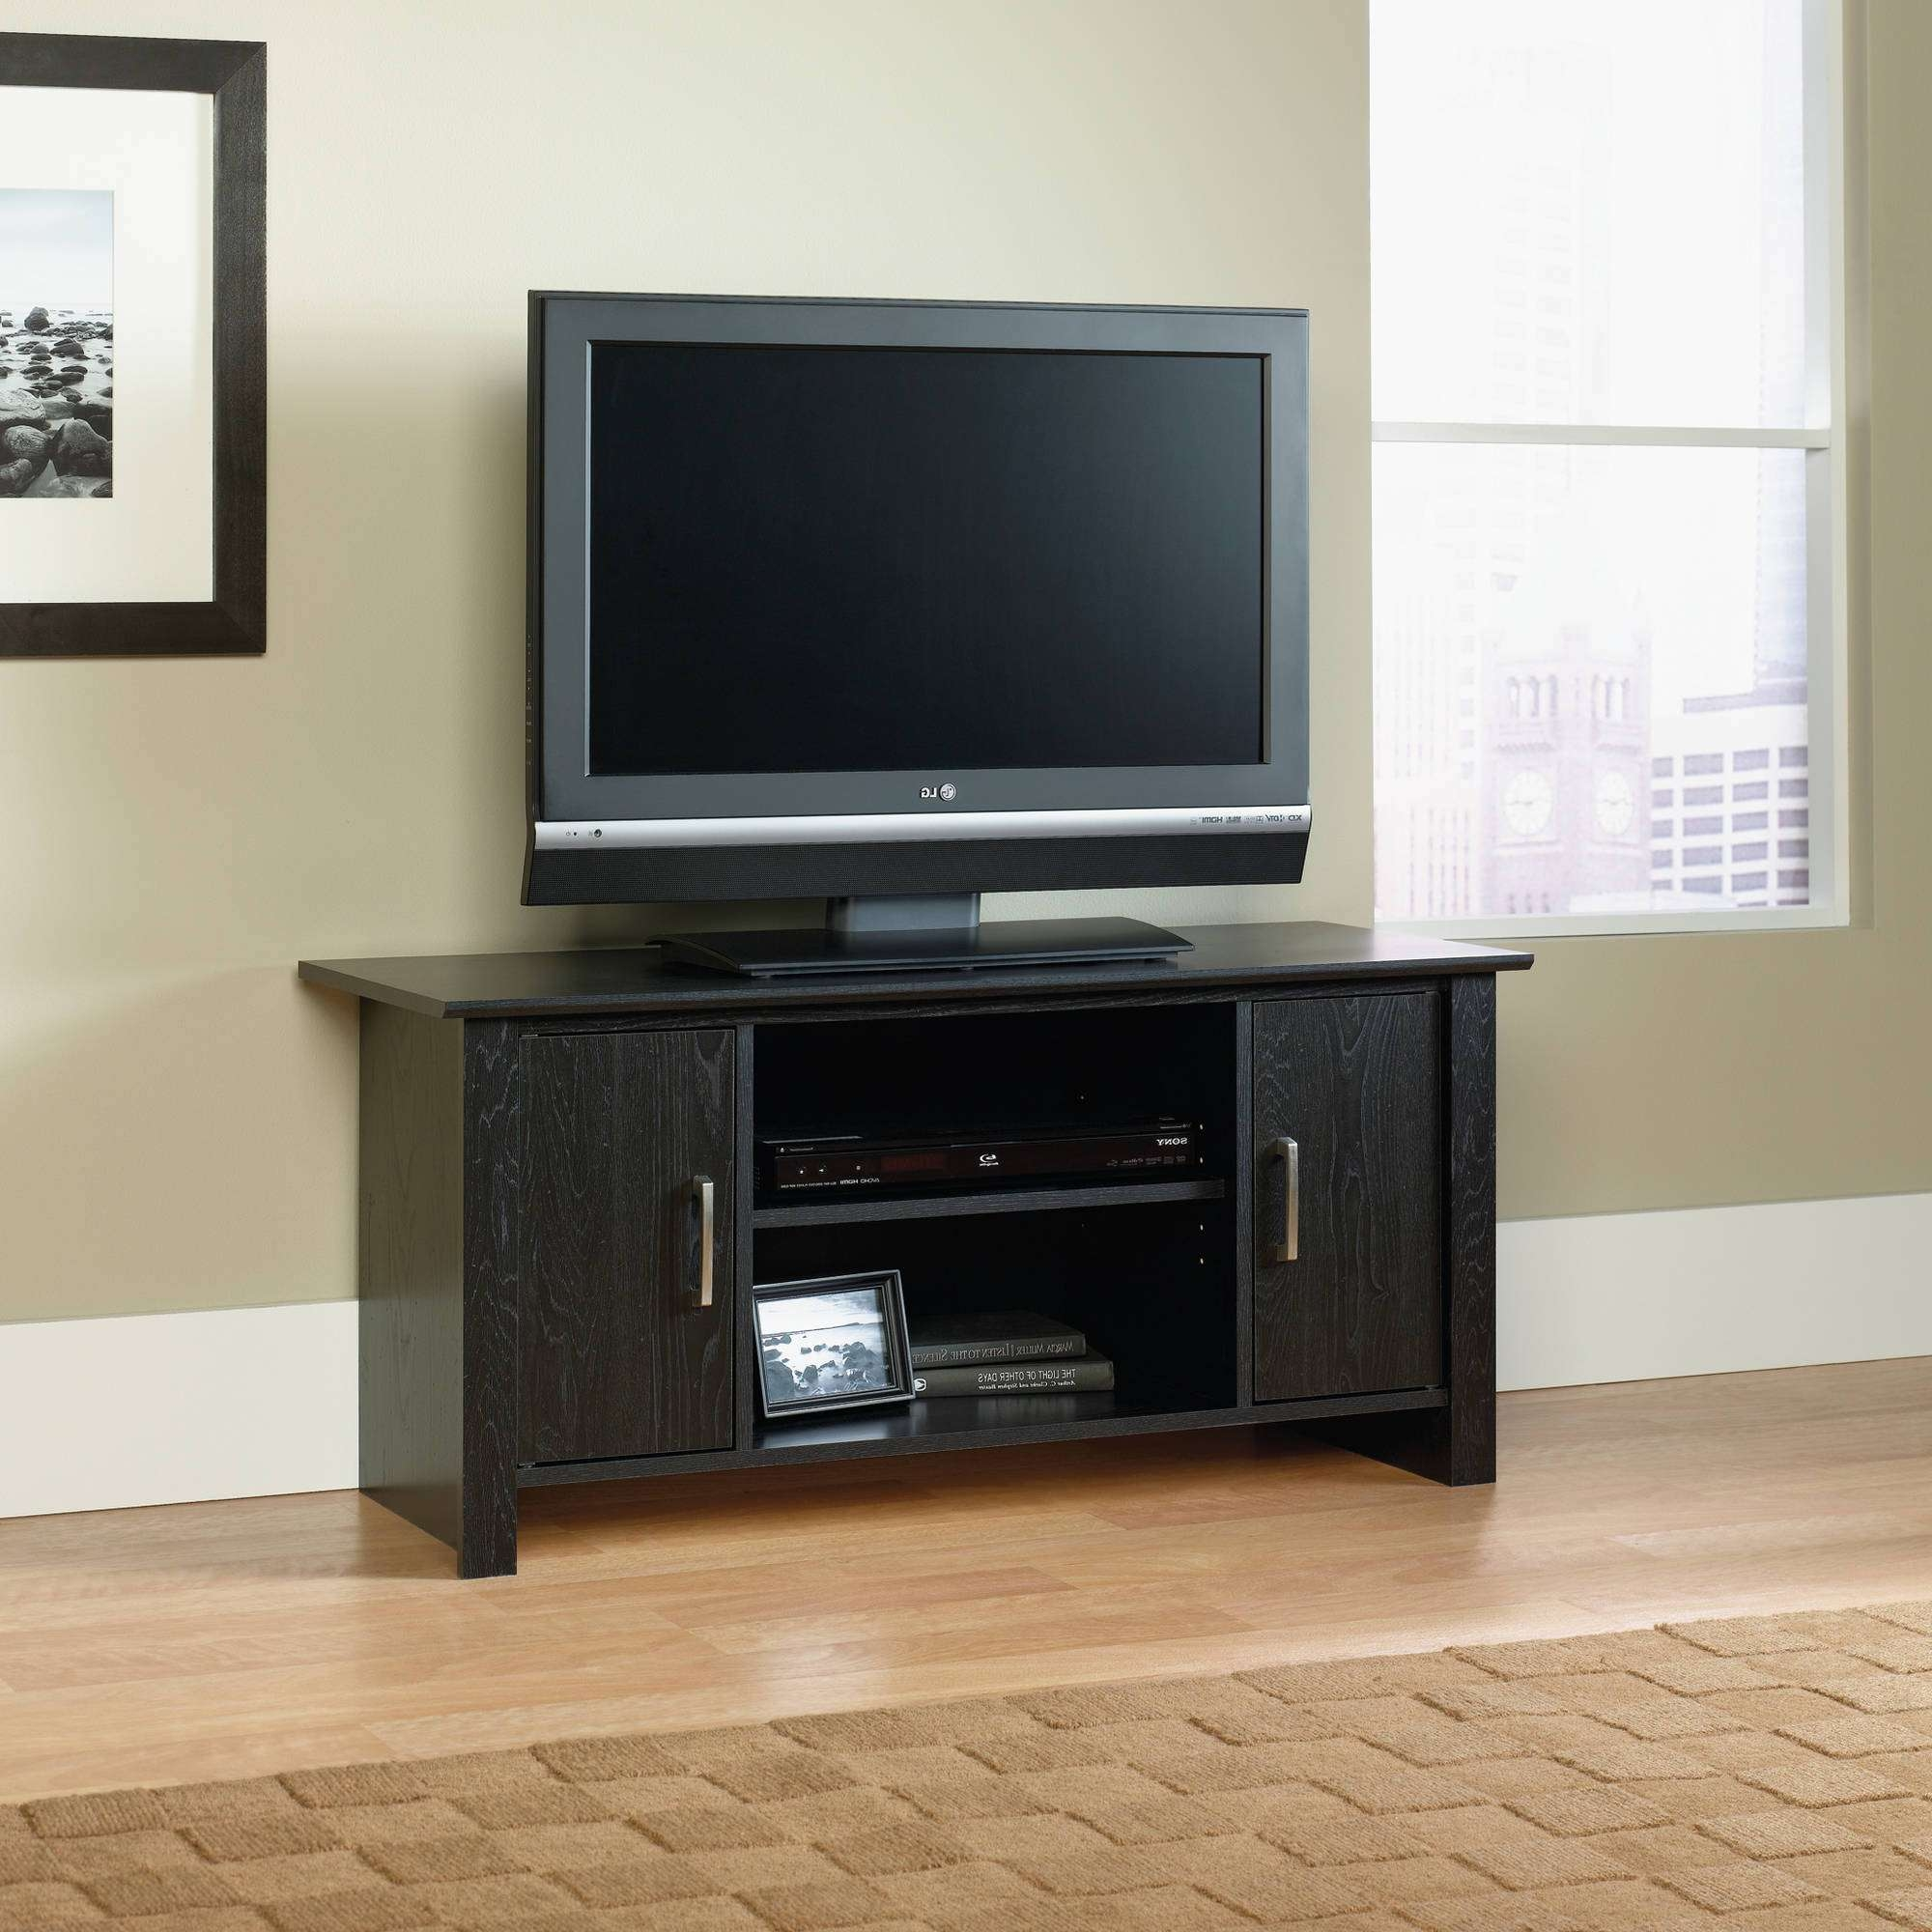 Tv Stand : 41 Marvelous Flat Screen Tv Table Stand Photos Concept In Universal Flat Screen Tv Stands (View 15 of 20)